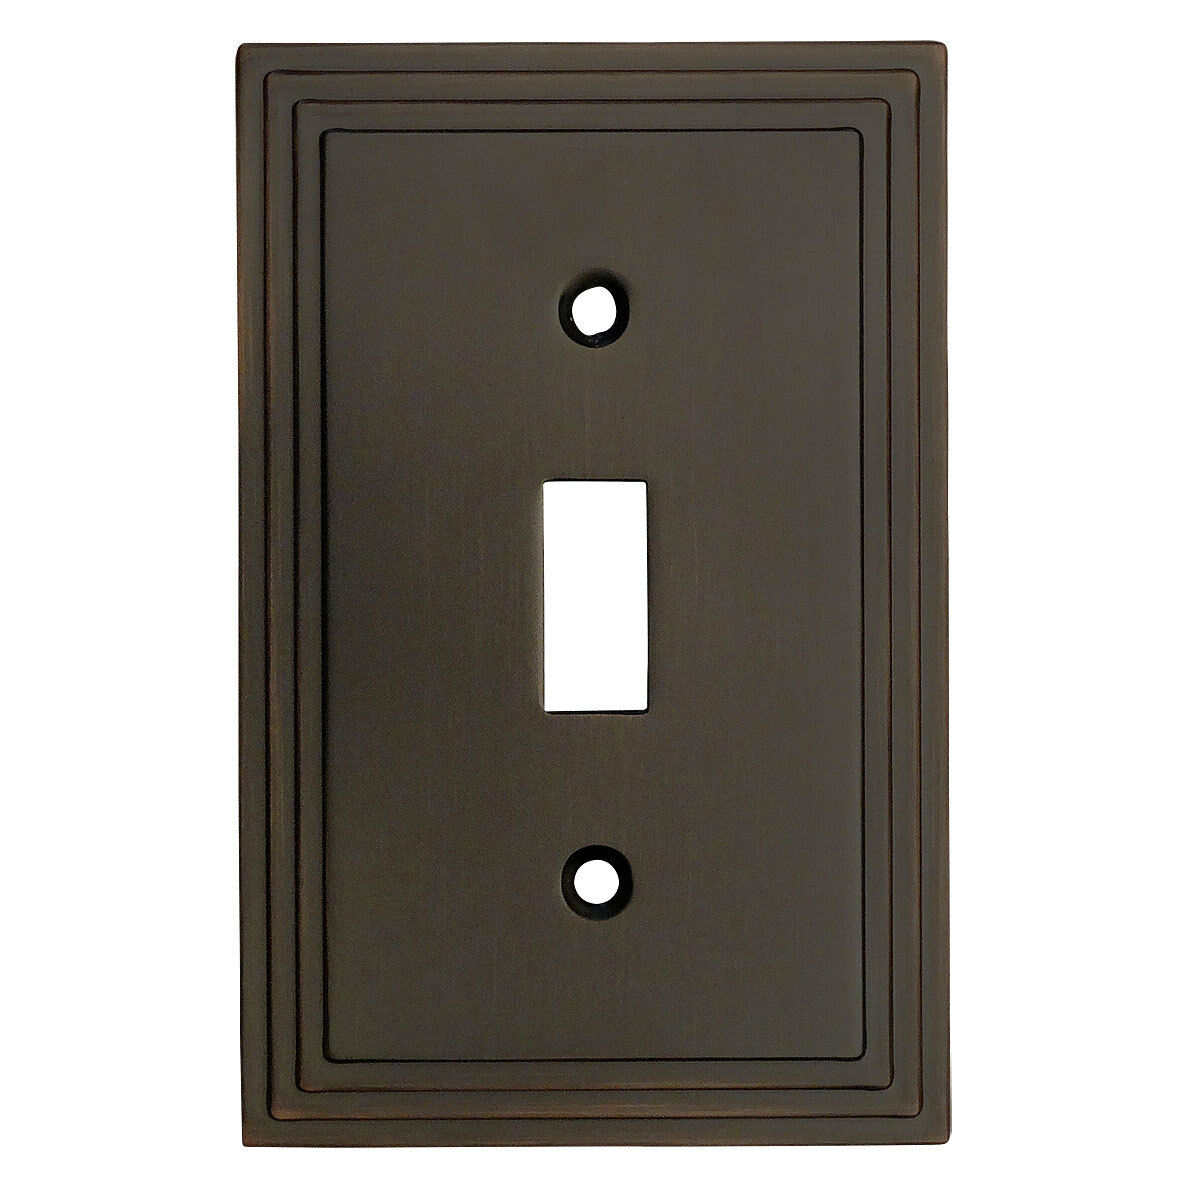 Single Switch Plate Covers Cosmas 25053Orb Oil Rubbed Bronze Single Toggle Switch Plate